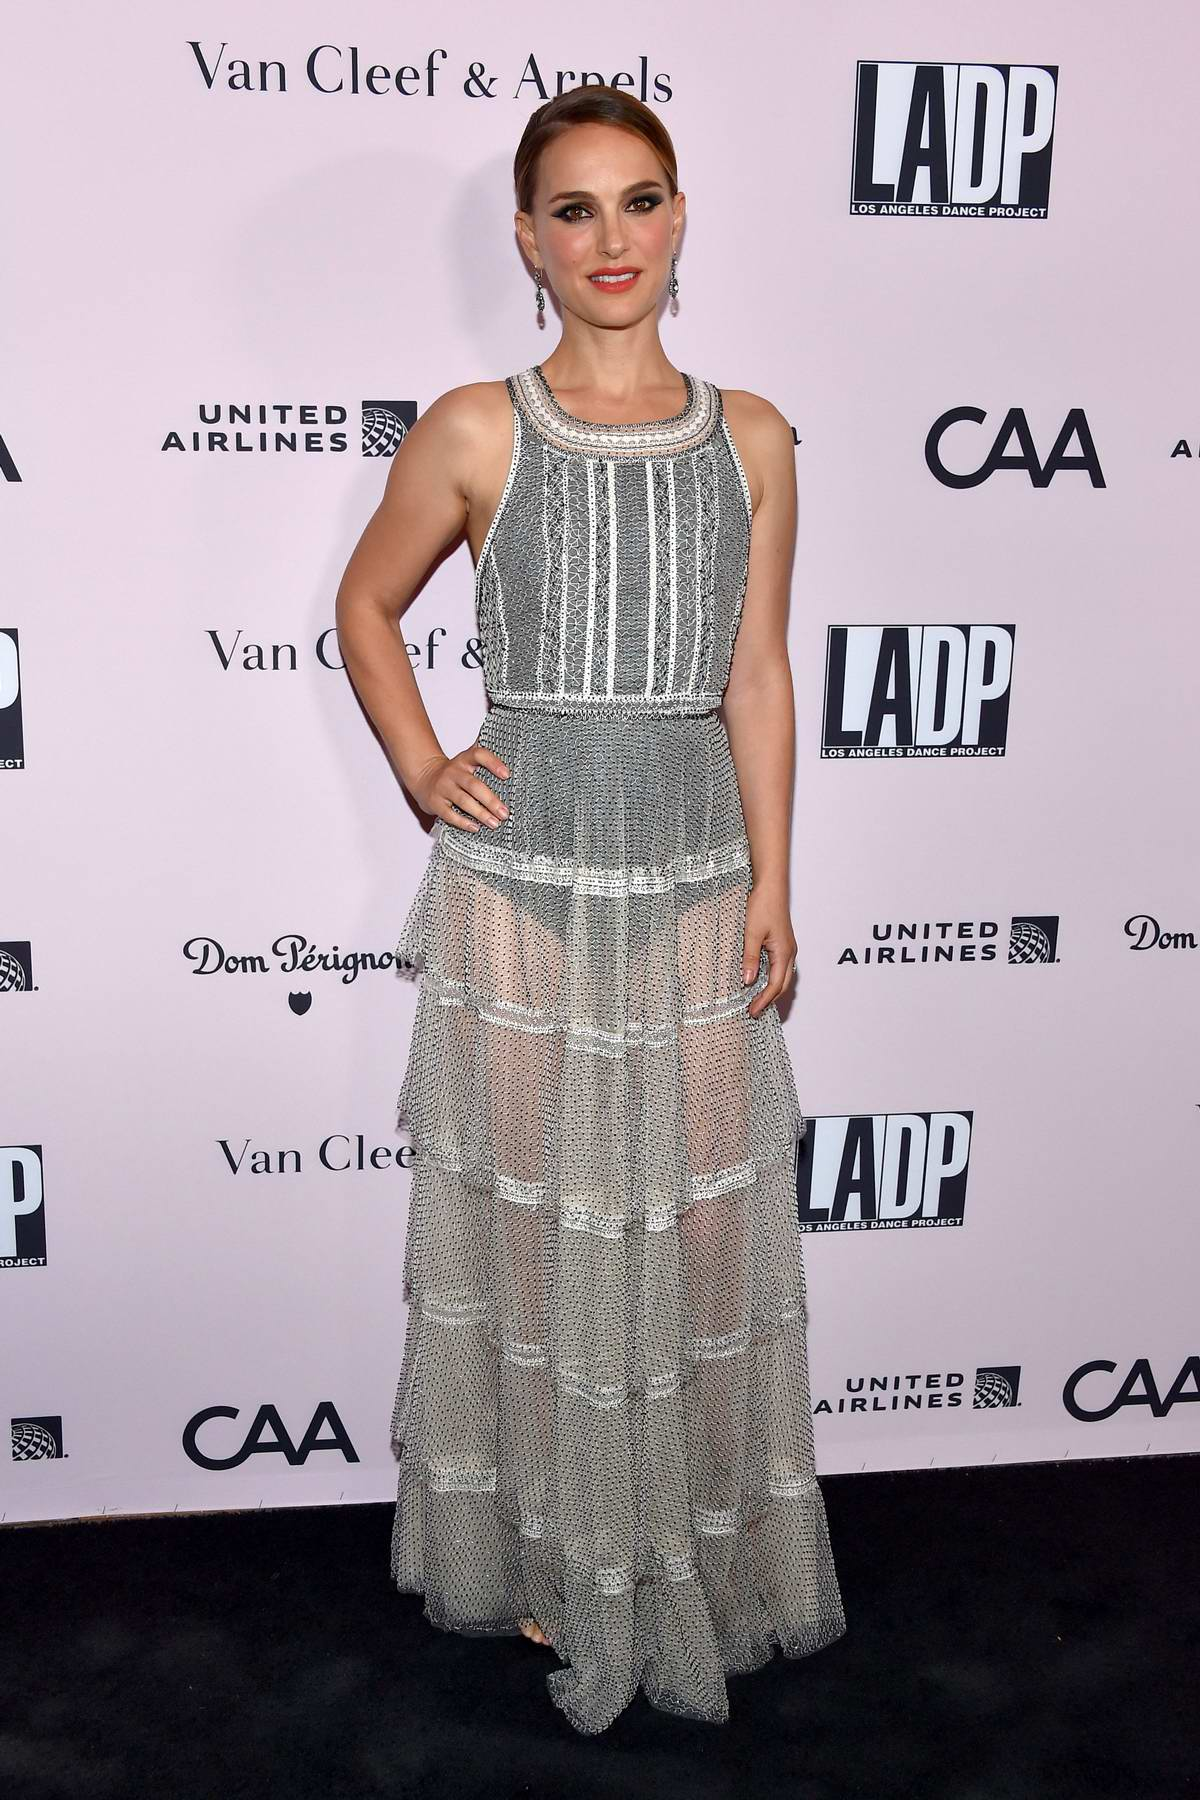 Natalie Portman attends the LA Dance Project Gala at Hauser & Wirth in Los Angeles